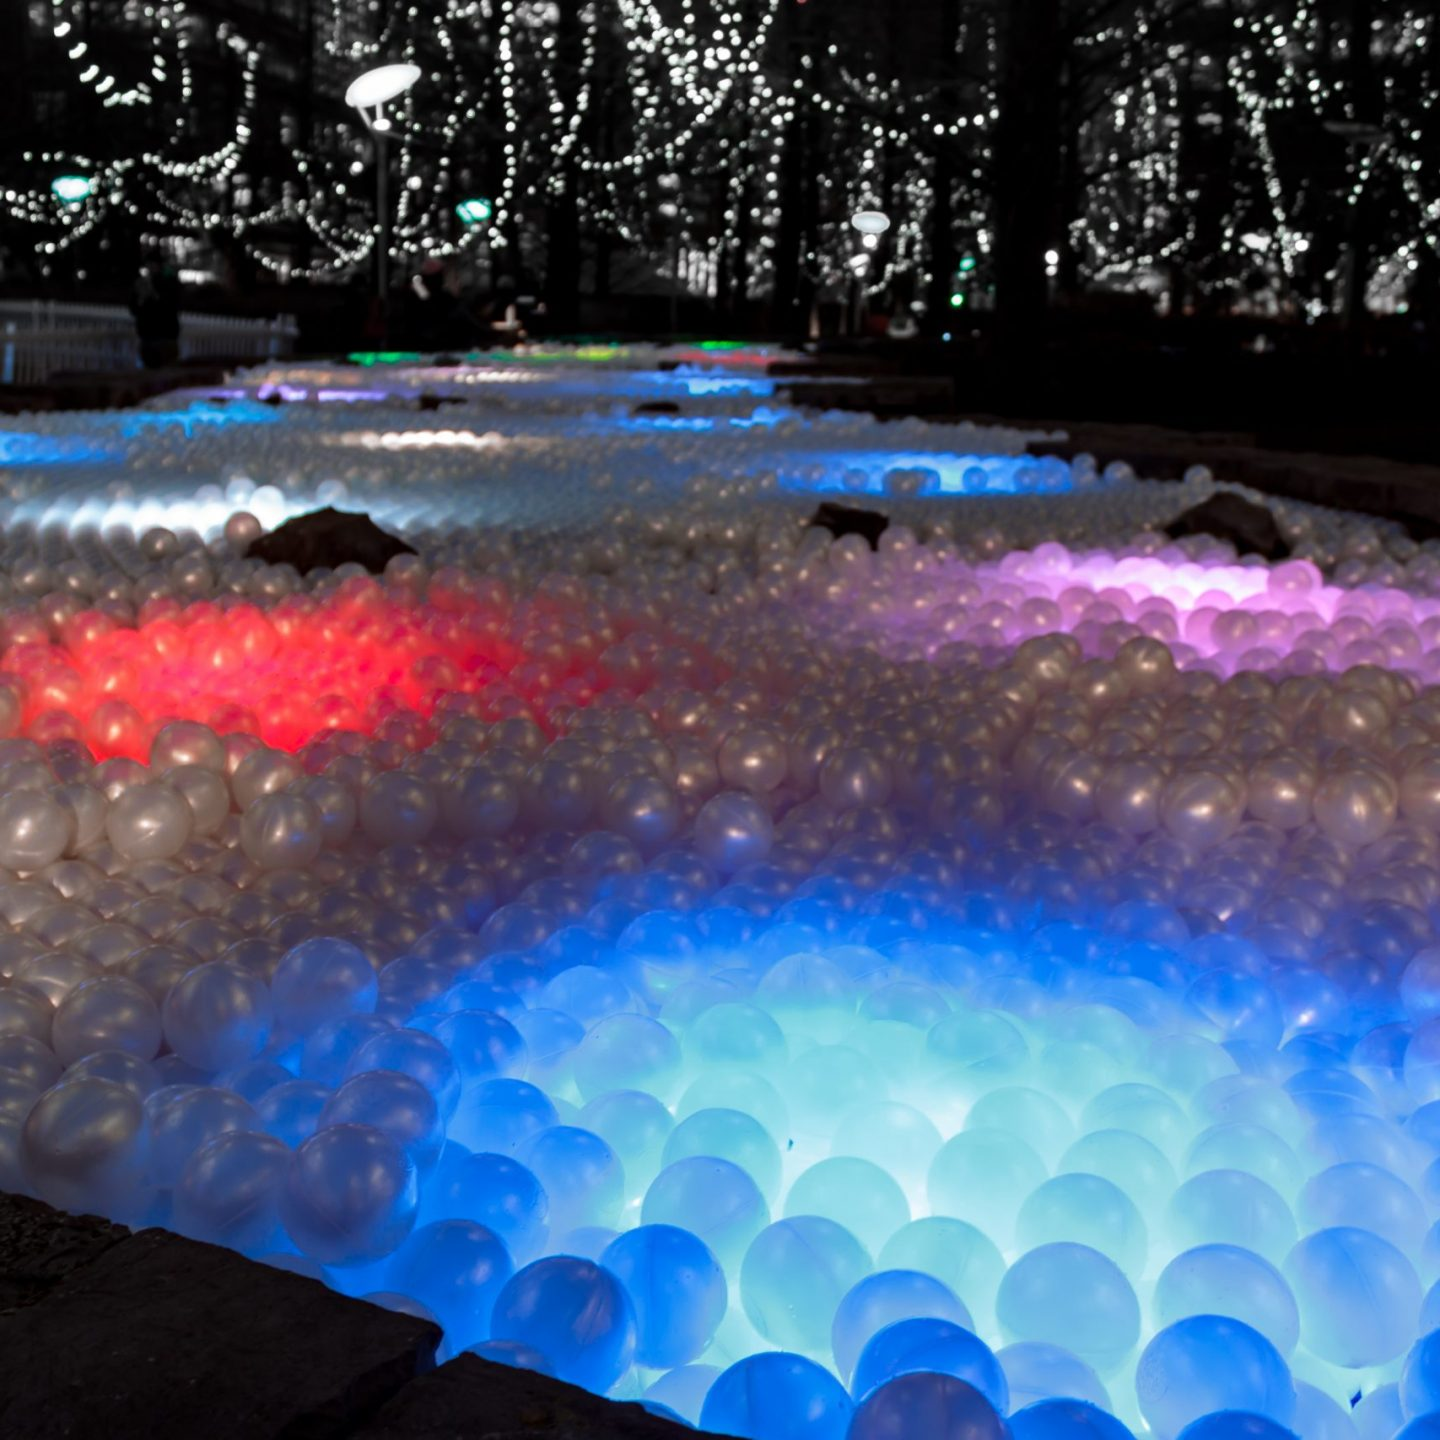 Canary Wharf Winter Lights 2020 - Pools of Light